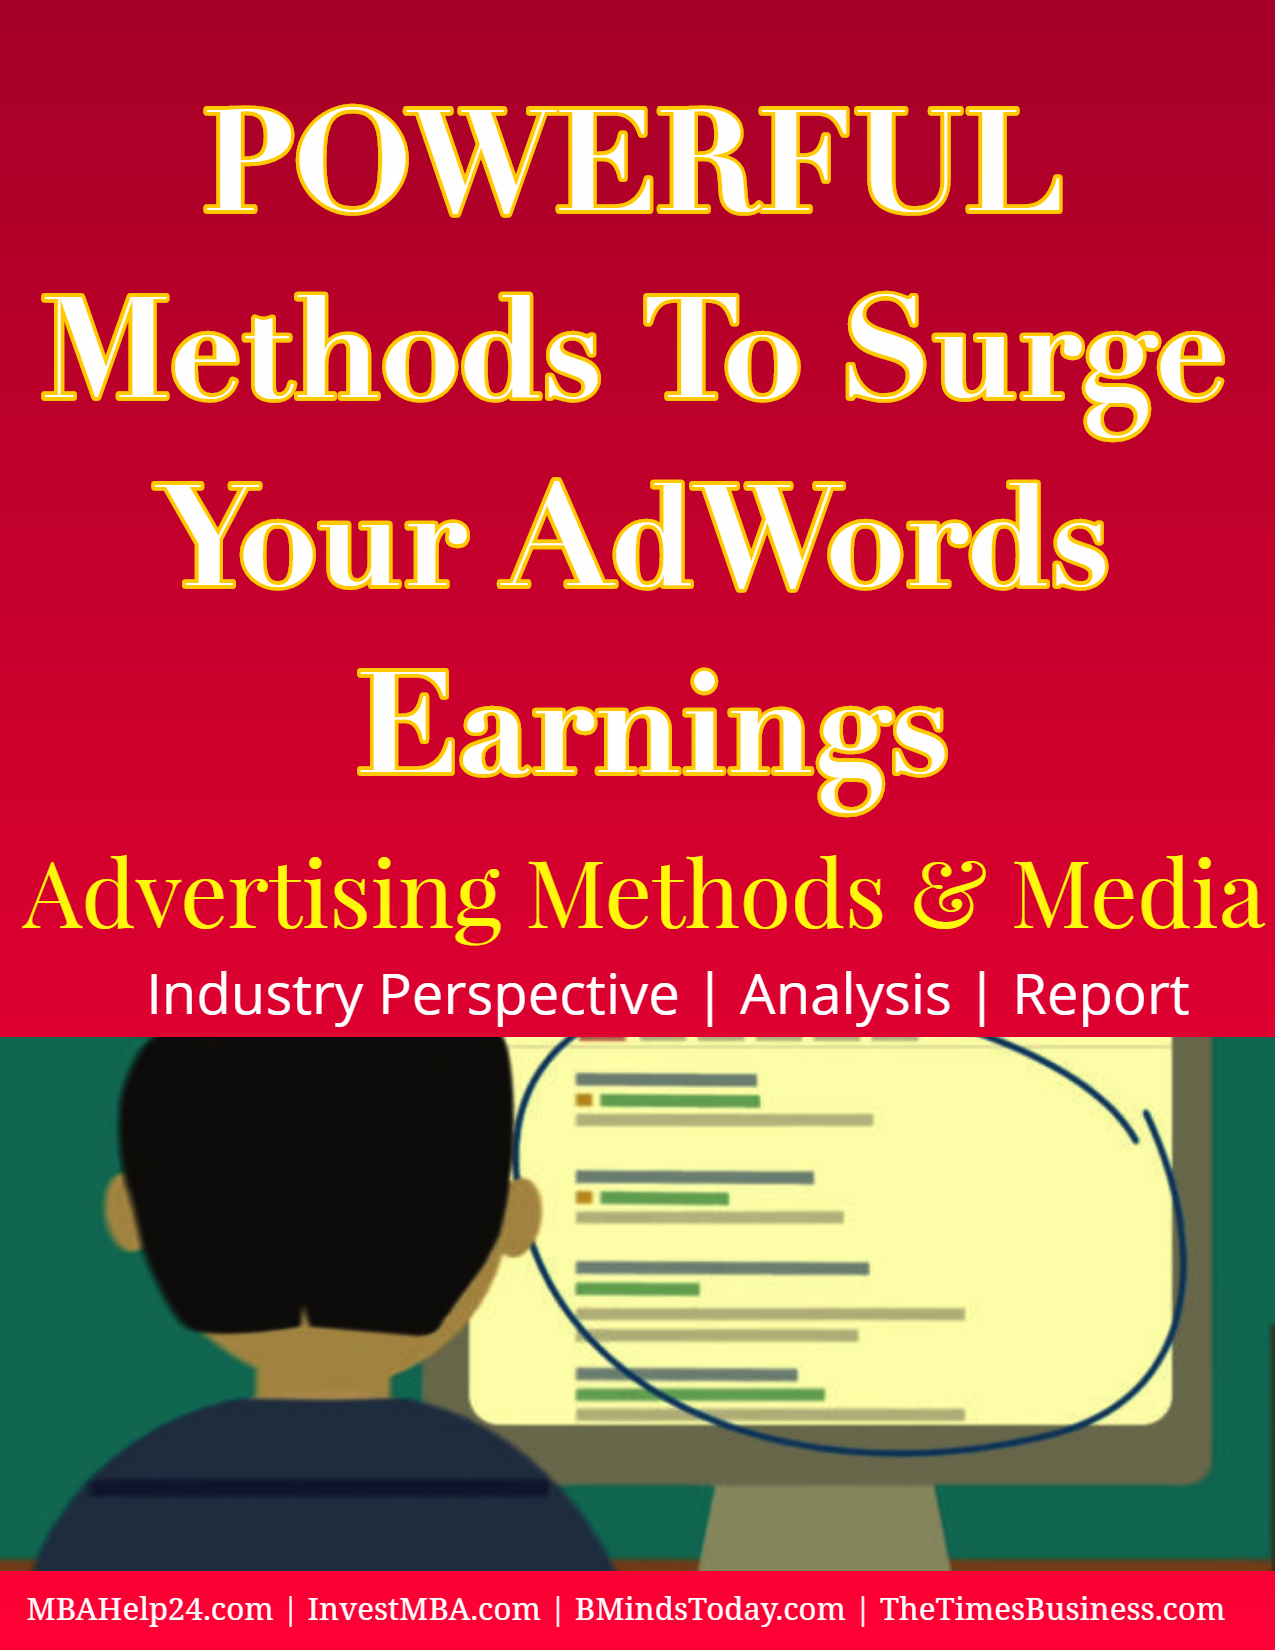 POWERFUL Methods To Increase Your AdWords Earnings adwords POWERFUL Methods To Surge Your AdWords Earnings POWERFUL Methods To Increase Your AdWords Earnings